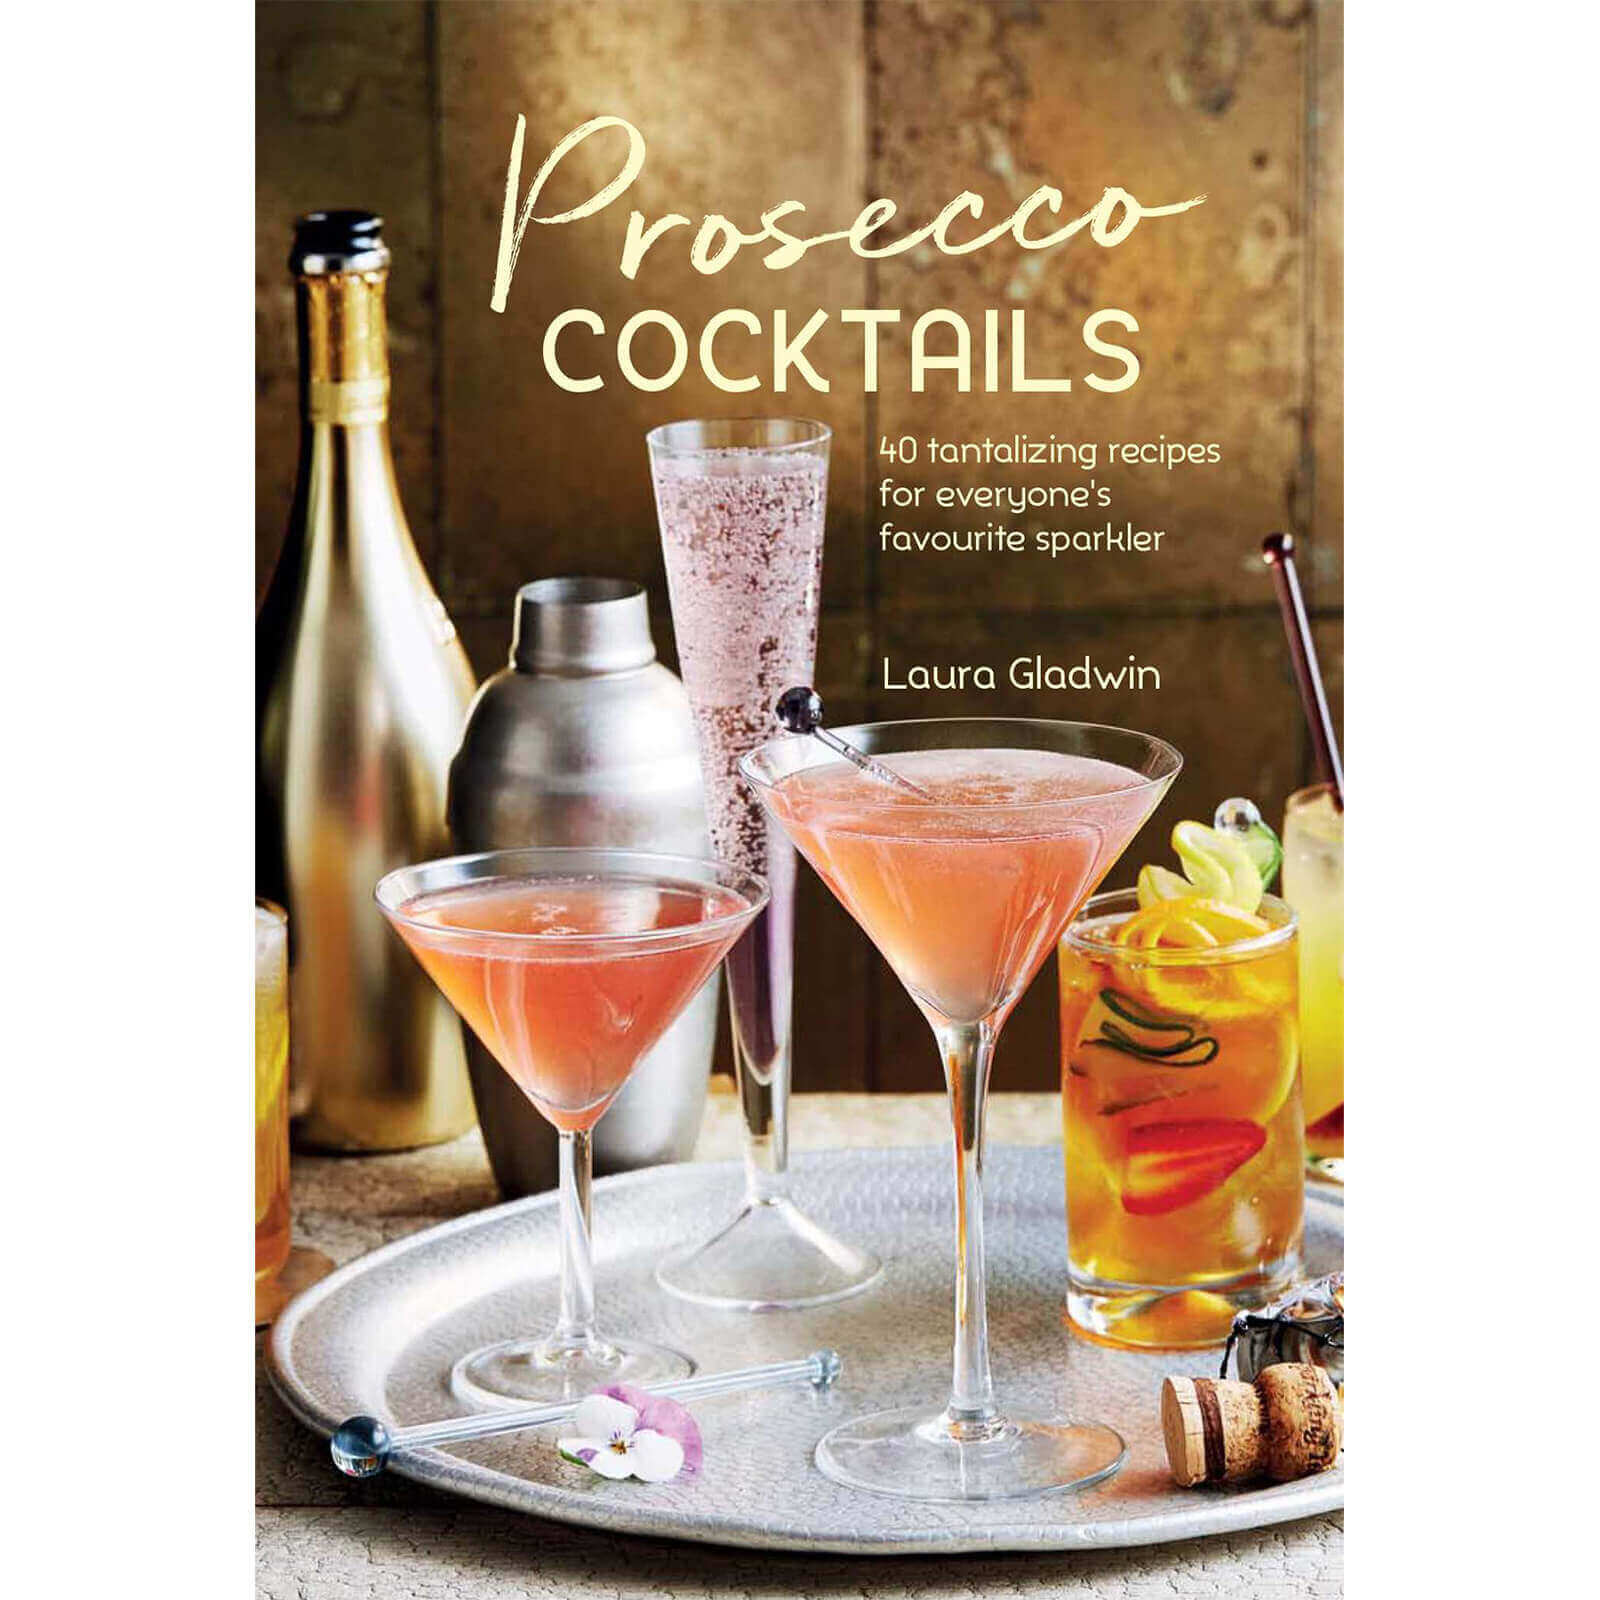 Bruncher's Foodie Christmas Gift Guide: Prosecco Cocktails Recipe book